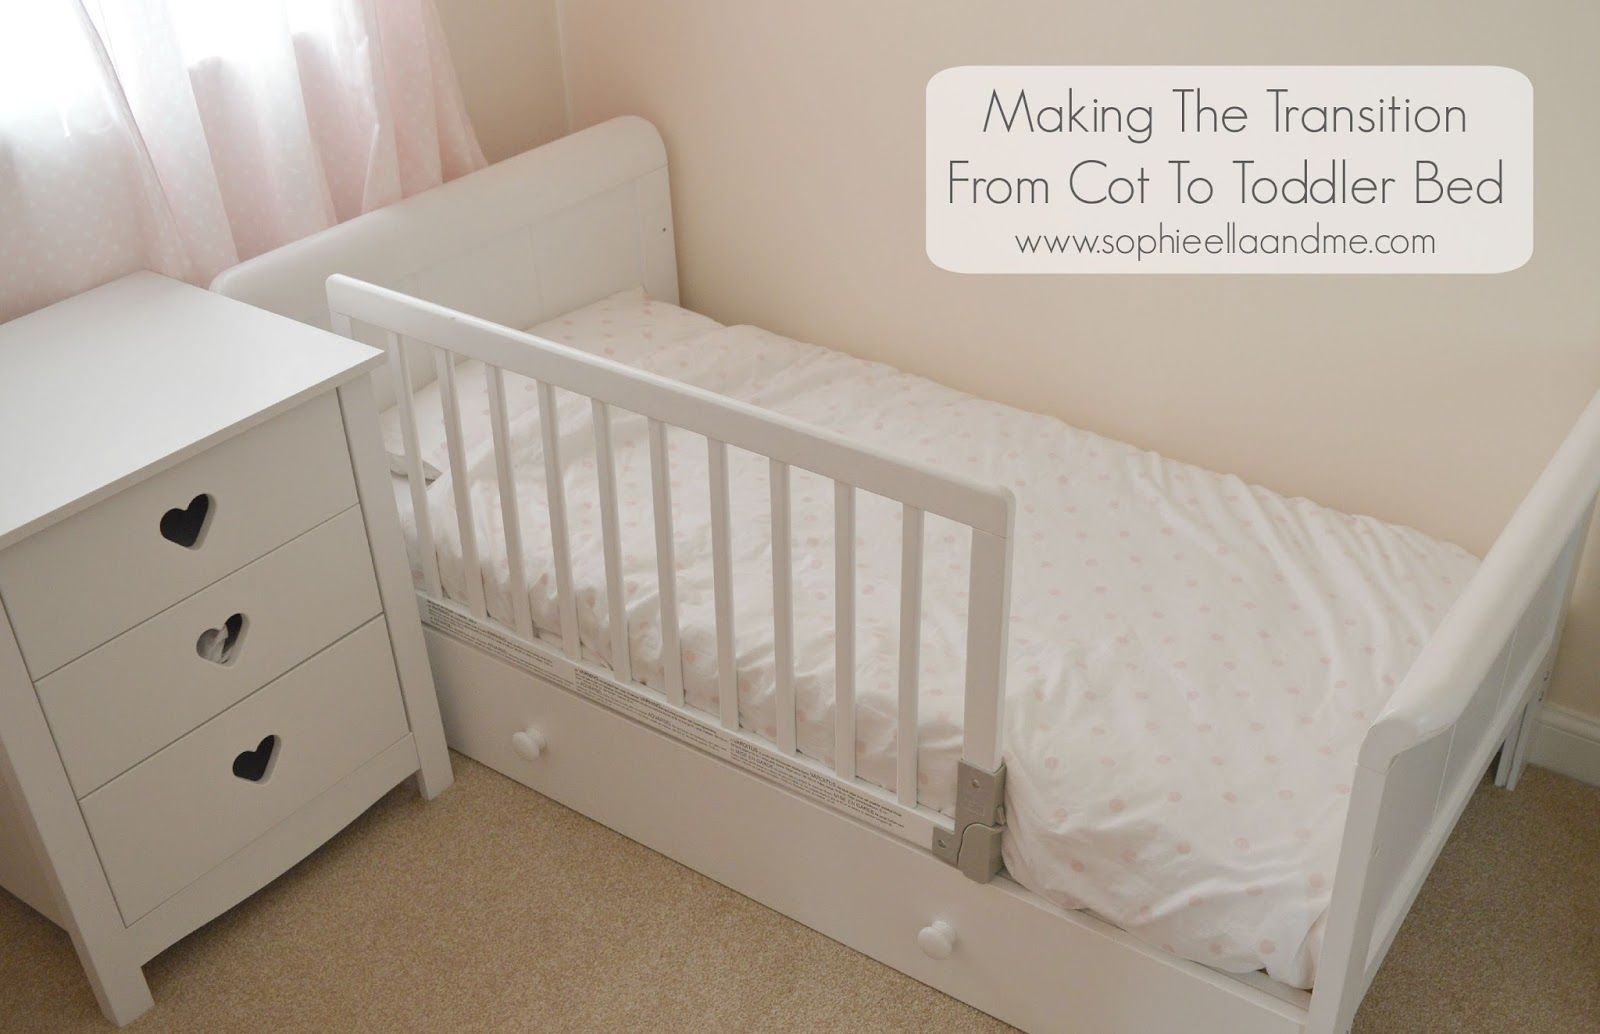 Safe Sleeping Places For The Offspring Cots For 1 Year Old Storiestrending Com Toddler Bed Transition Toddler Bed Toddler Cot